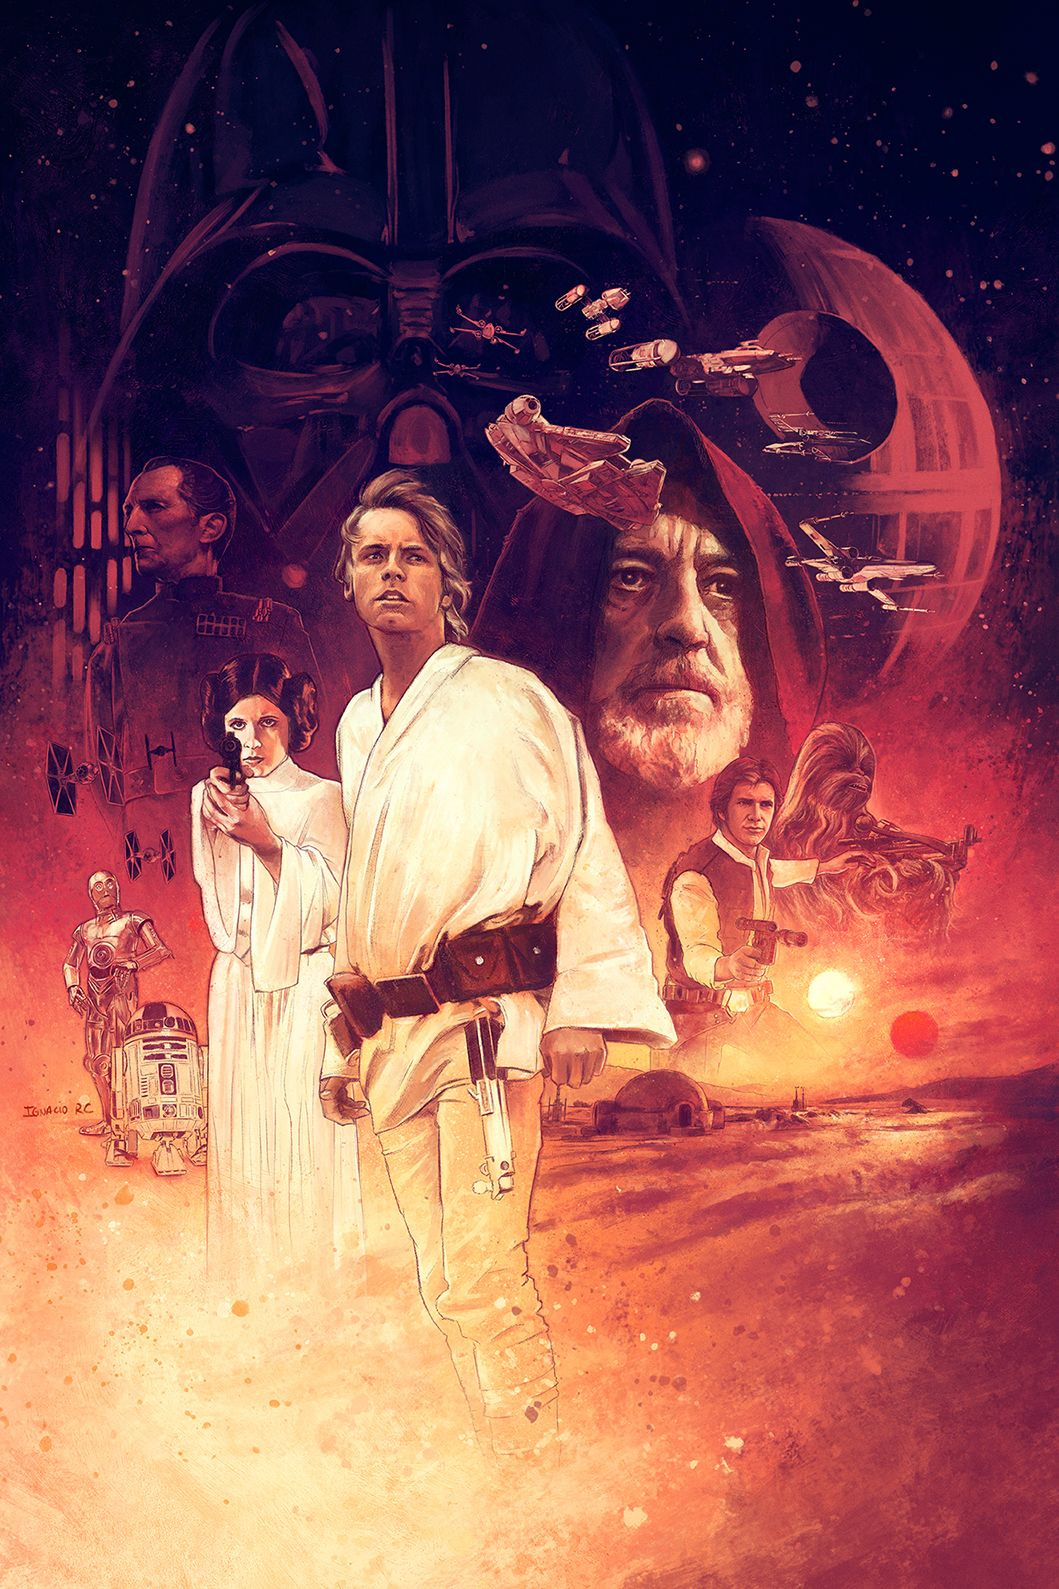 Star Wars Episode Iv A New Hope Star Wars Painting Star Wars